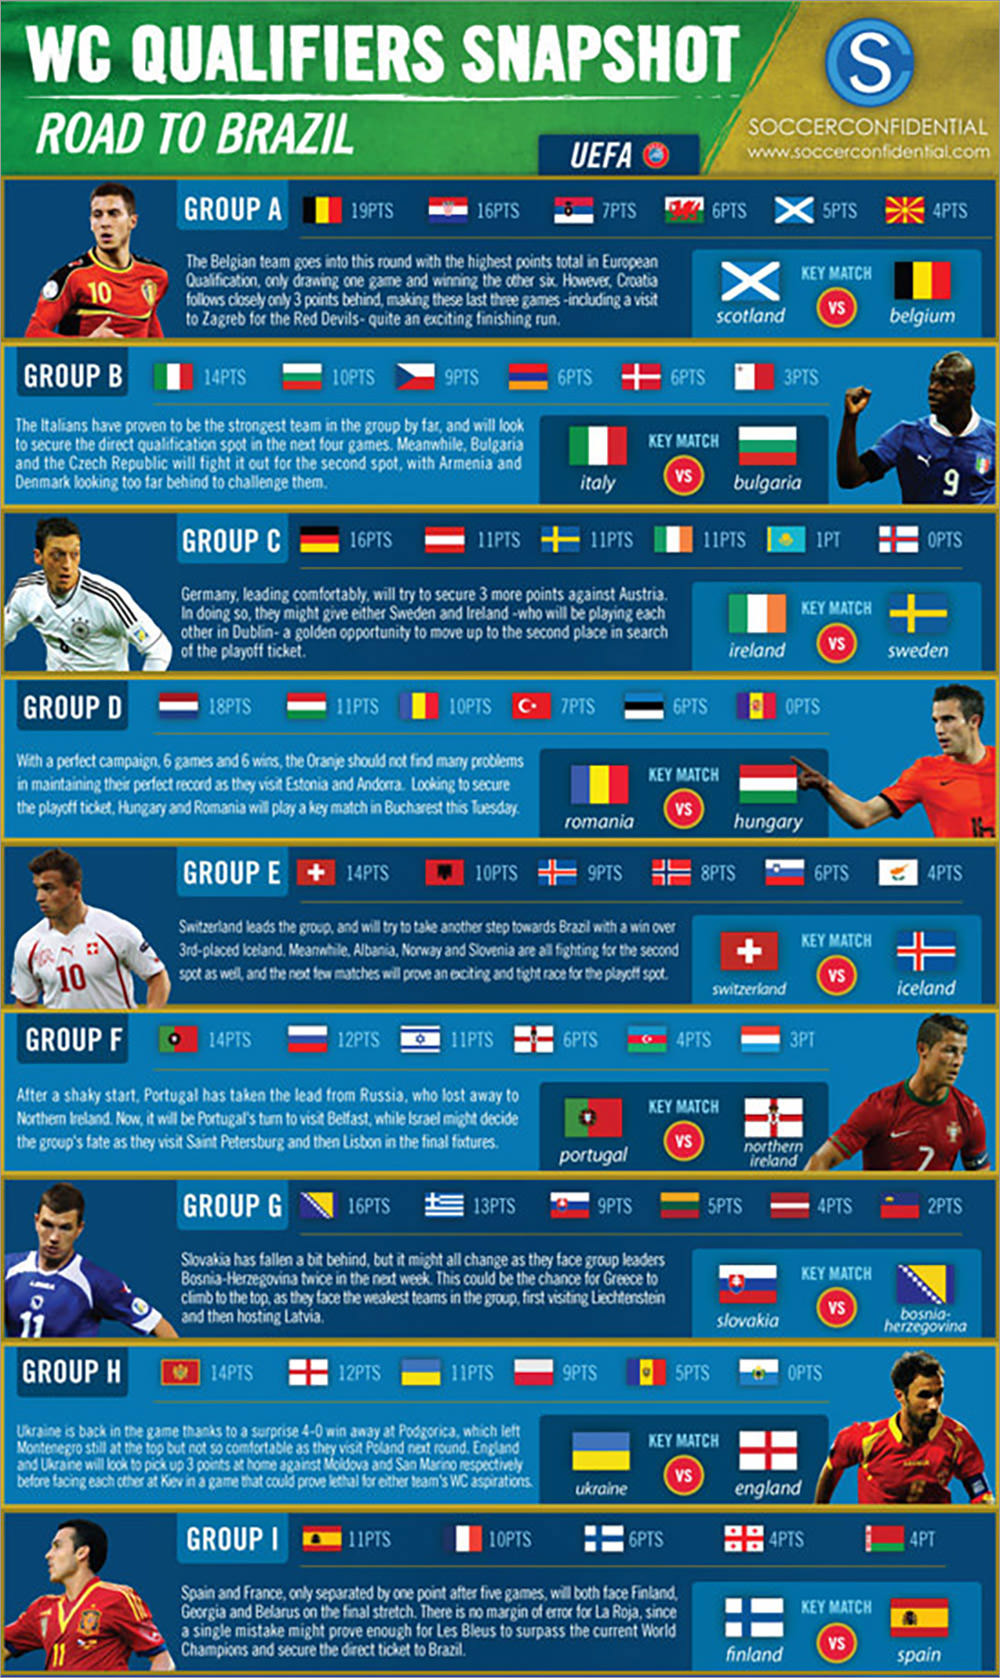 World Cup Qualifiers Snapshot